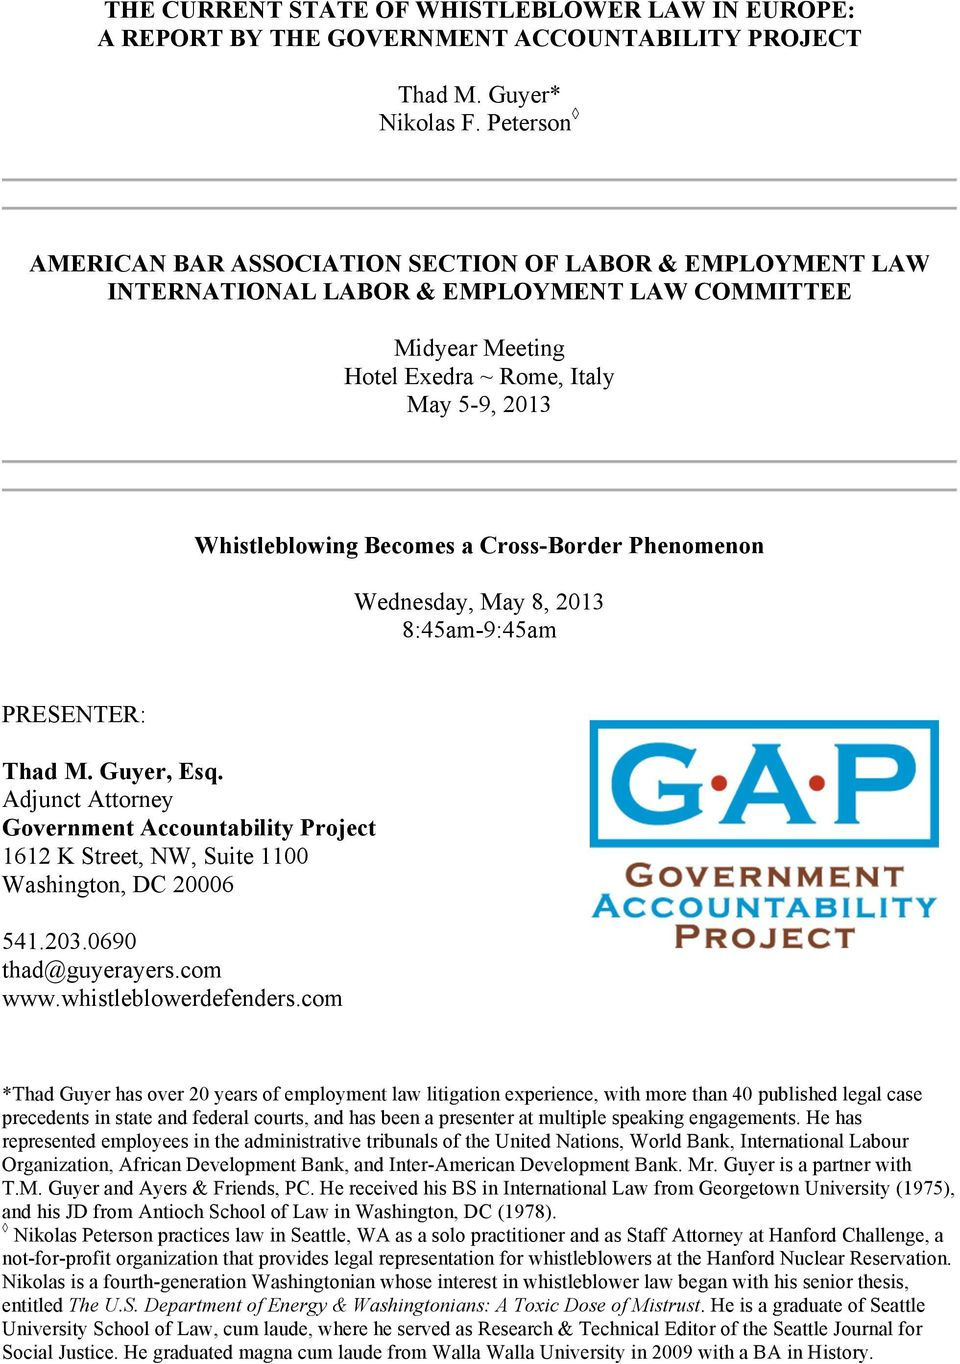 Cross-Border Phenomenon Wednesday, May 8, 2013 8:45am-9:45am PRESENTER: Thad M. Guyer, Esq. Adjunct Attorney Government Accountability Project 1612 K Street, NW, Suite 1100 Washington, DC 20006 541.